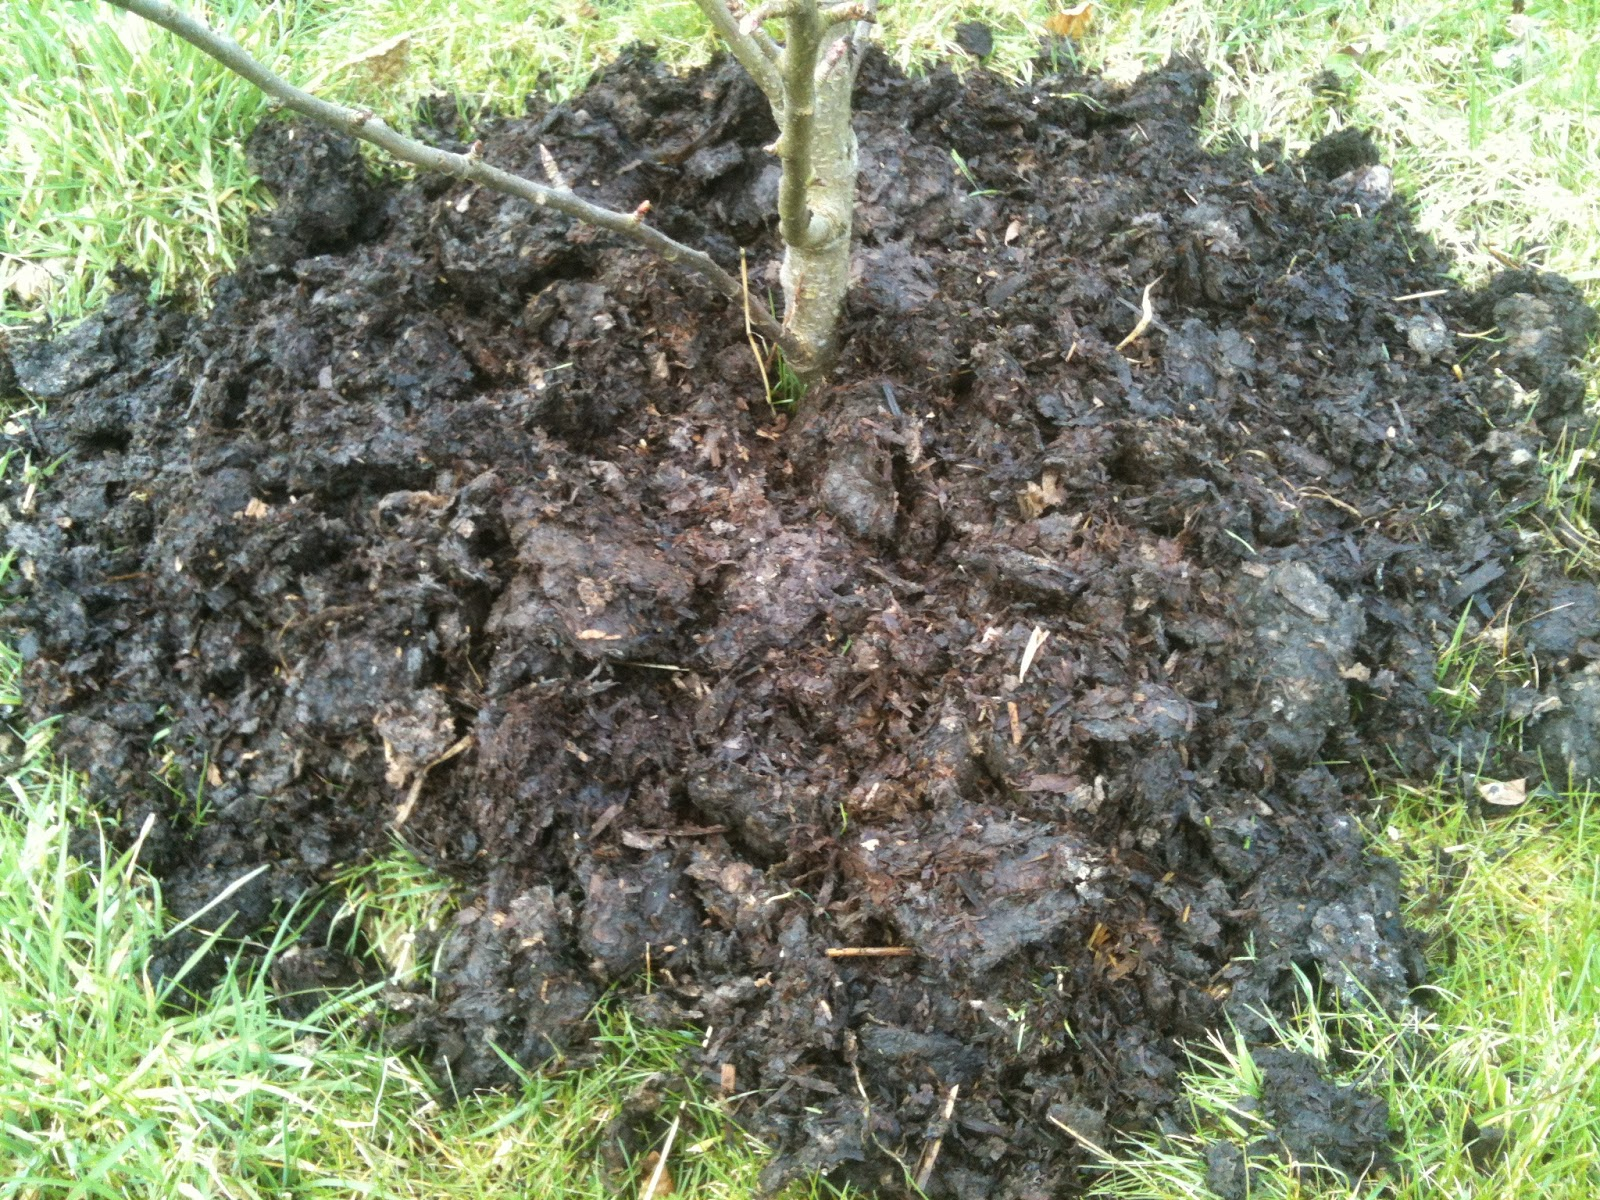 Mulching with manure could save you from weeding all summer.